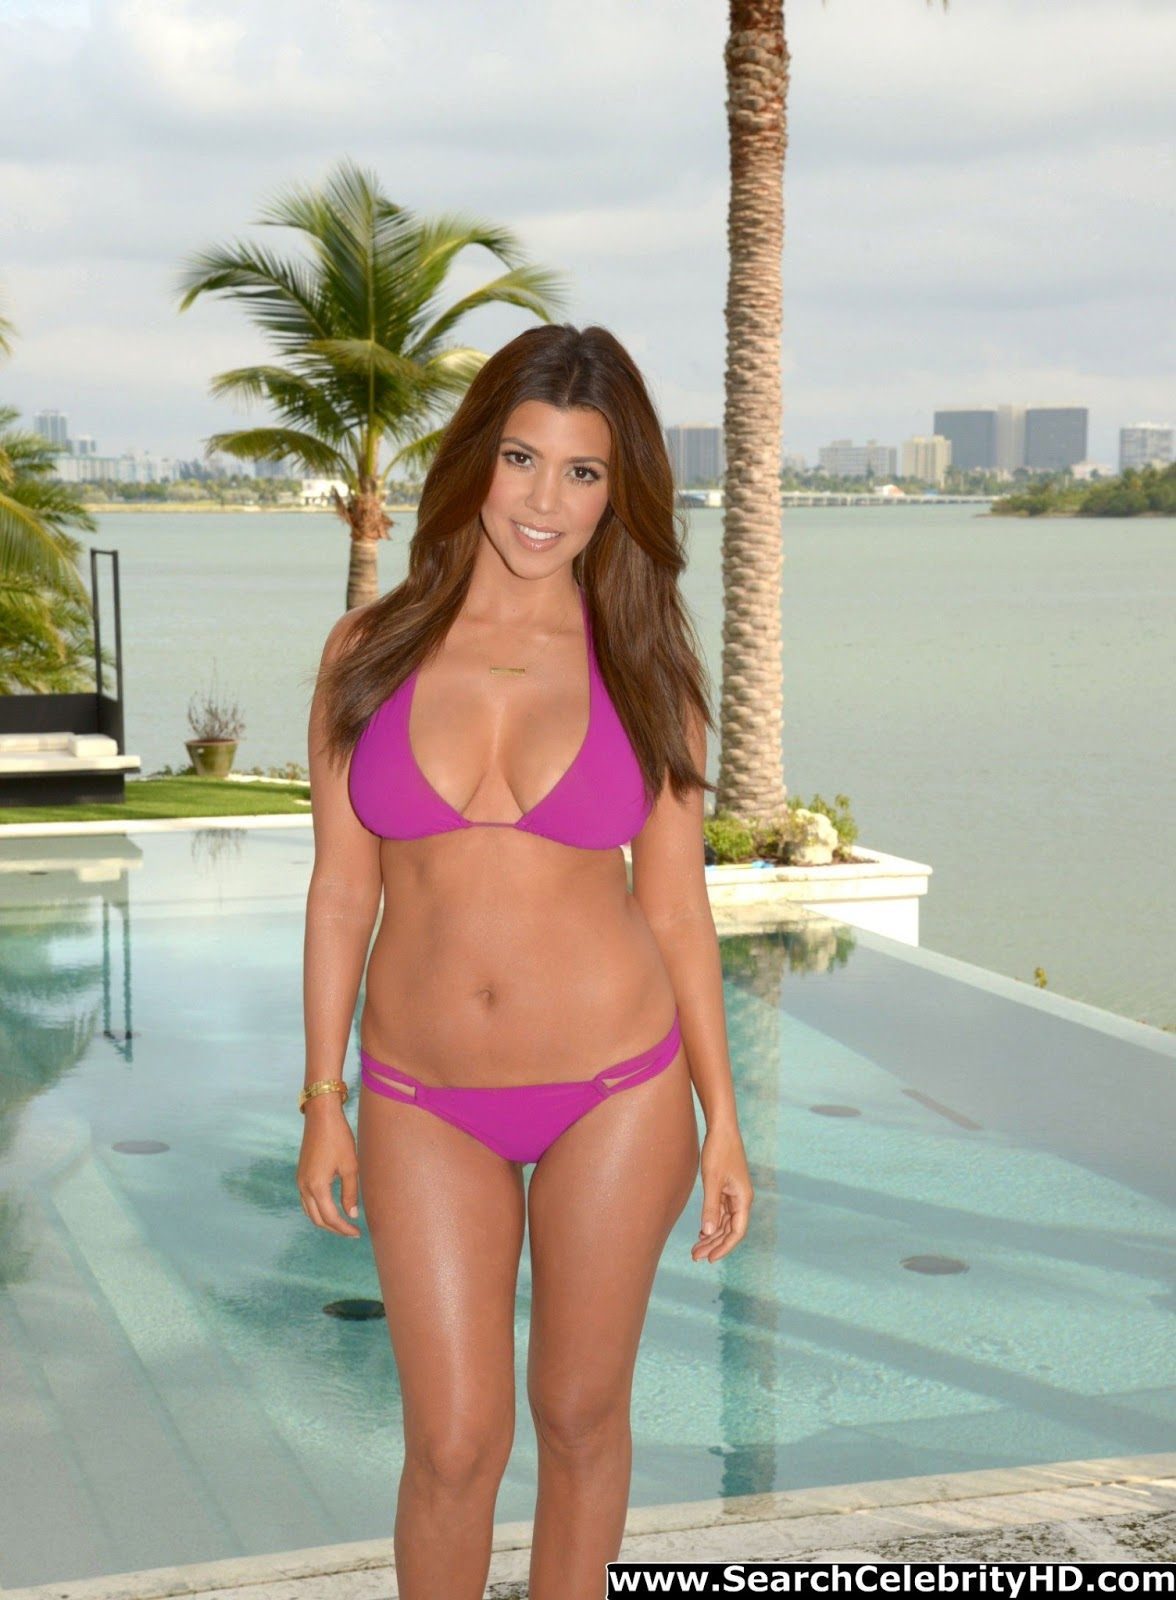 All clear, Photo shoot kloe kardashian in bikini theme, interesting